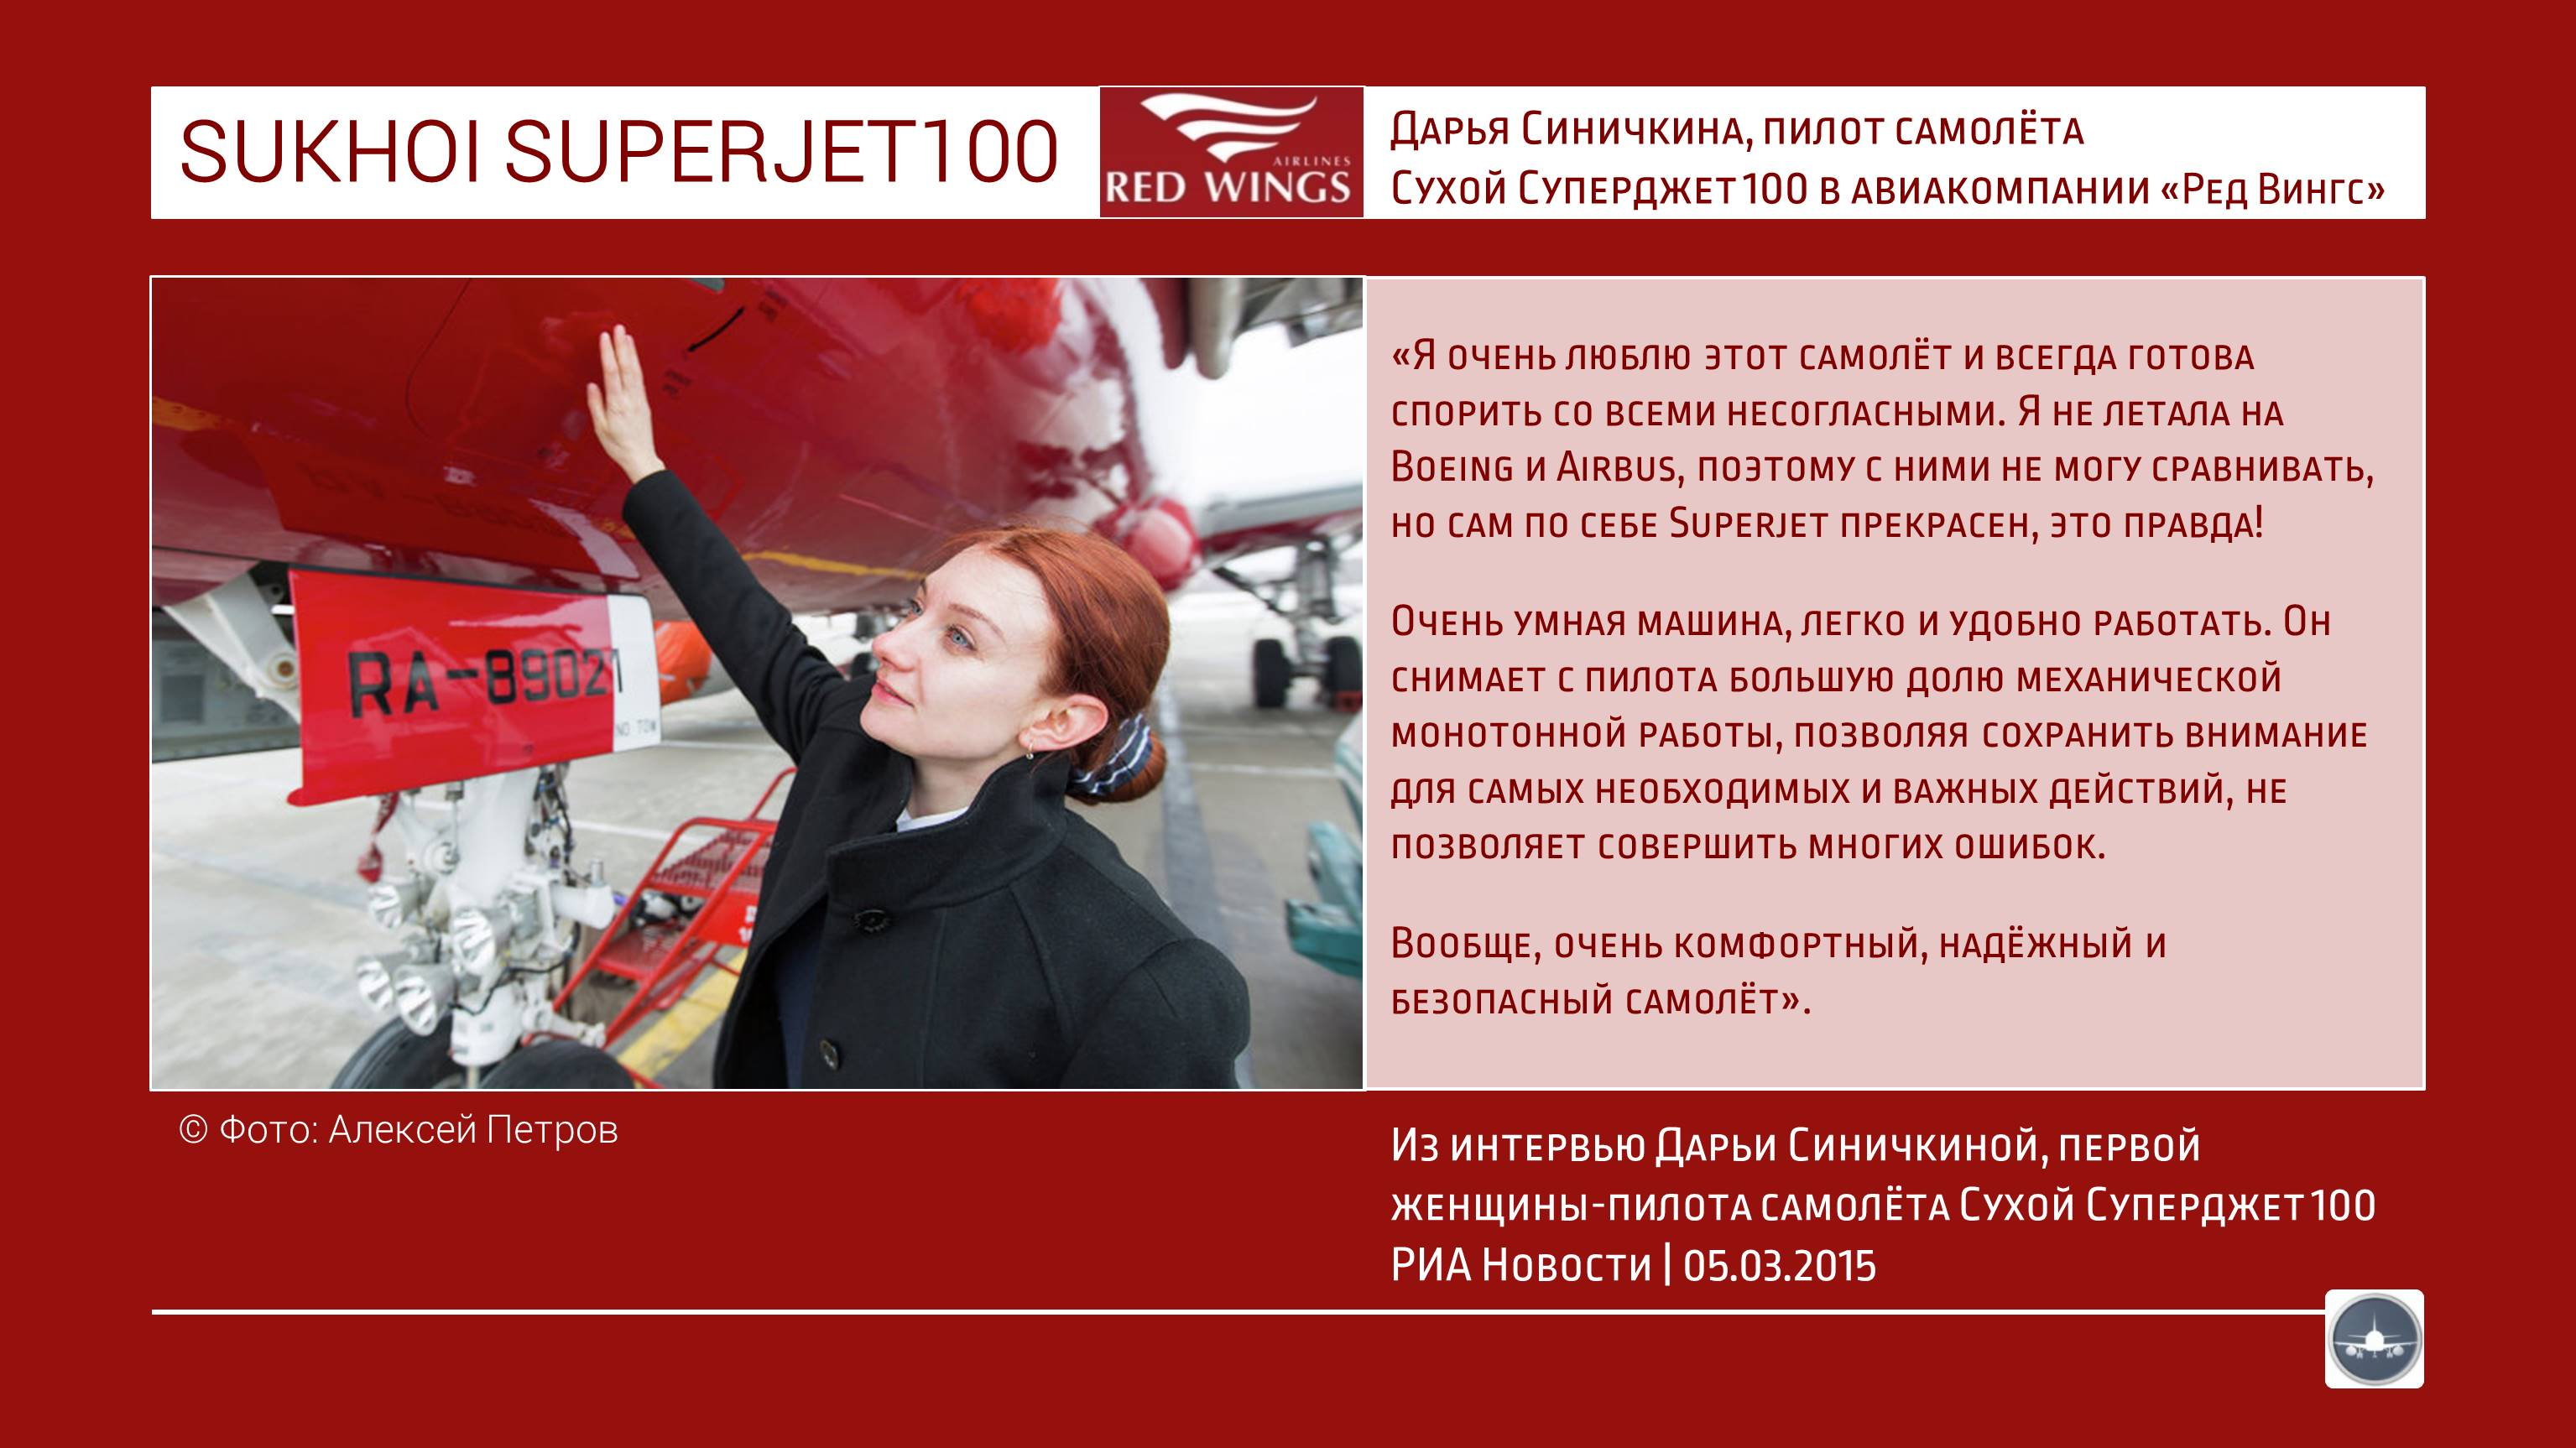 Sukhoi%20Superjet%20SSJ100%20RRJ95%20Red%20Wings%20Suchoi%20%281%29.JPG